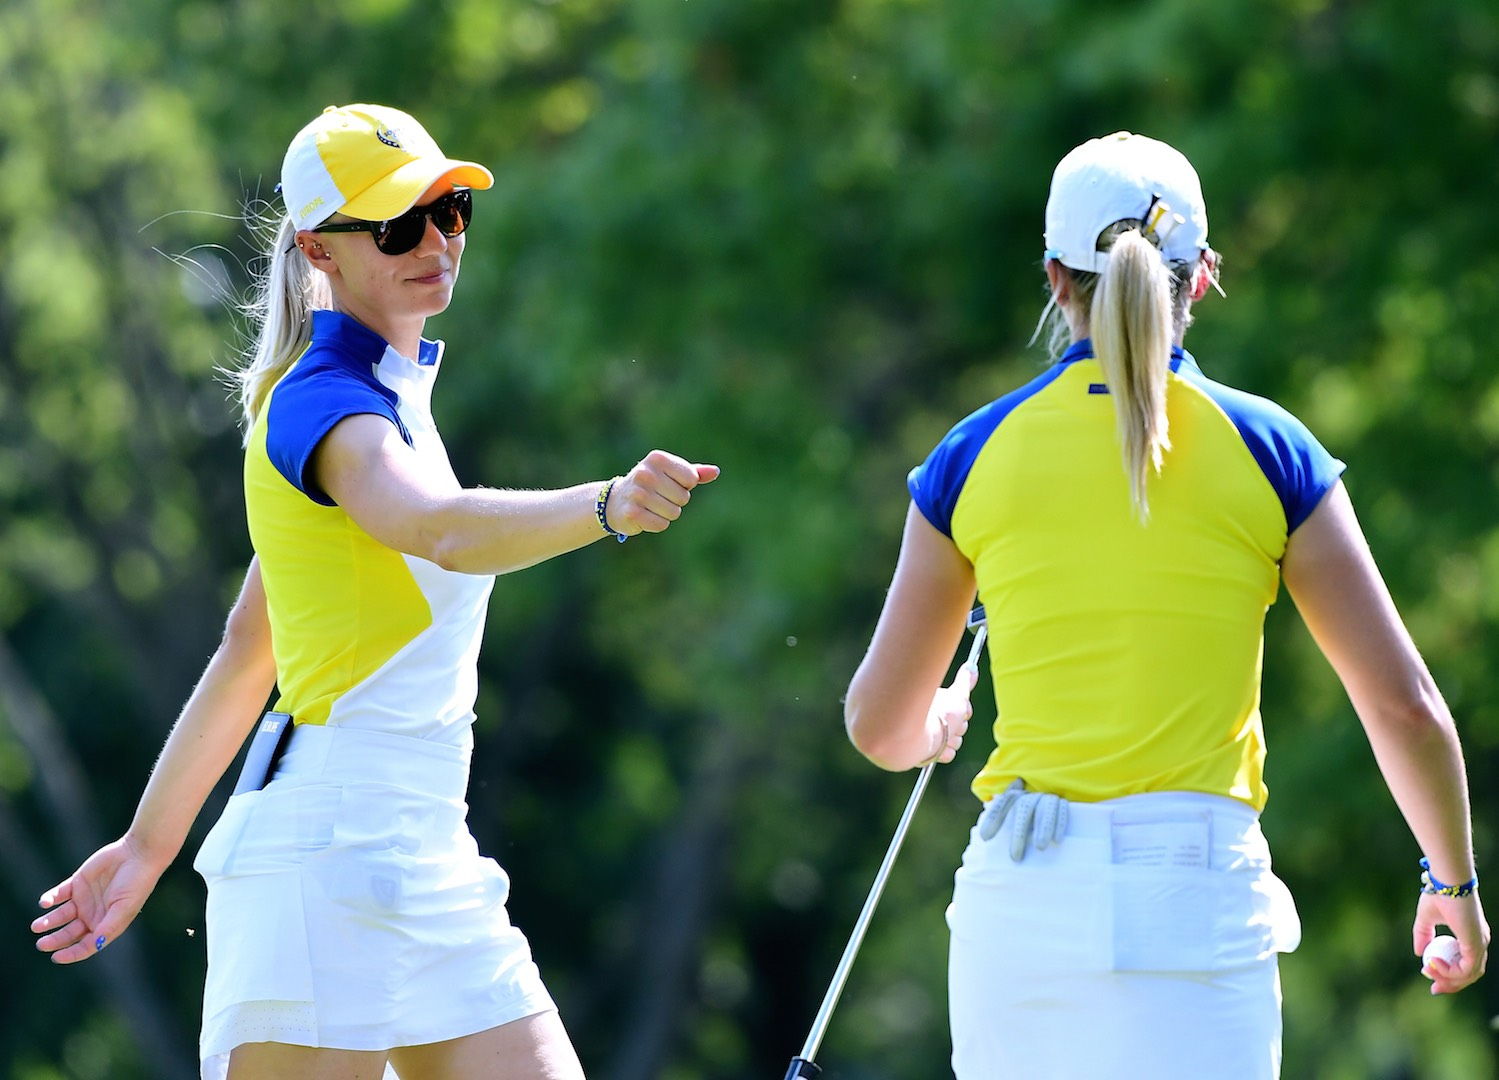 Solheim Cup whitewash for USA